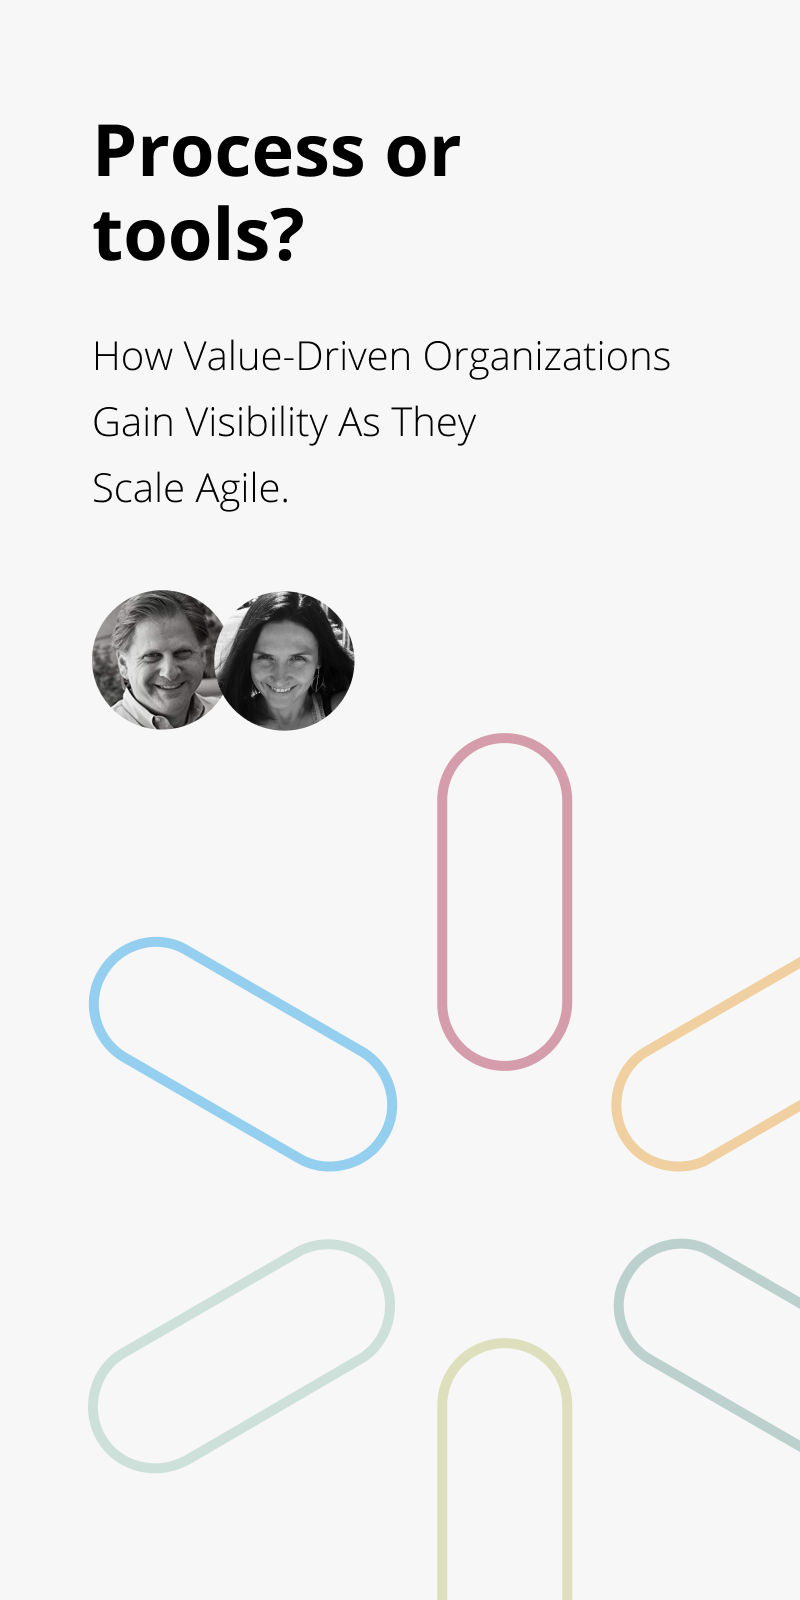 Process or Tools? How Value-Driven Organizations Gain Visibility As They Scale Agile